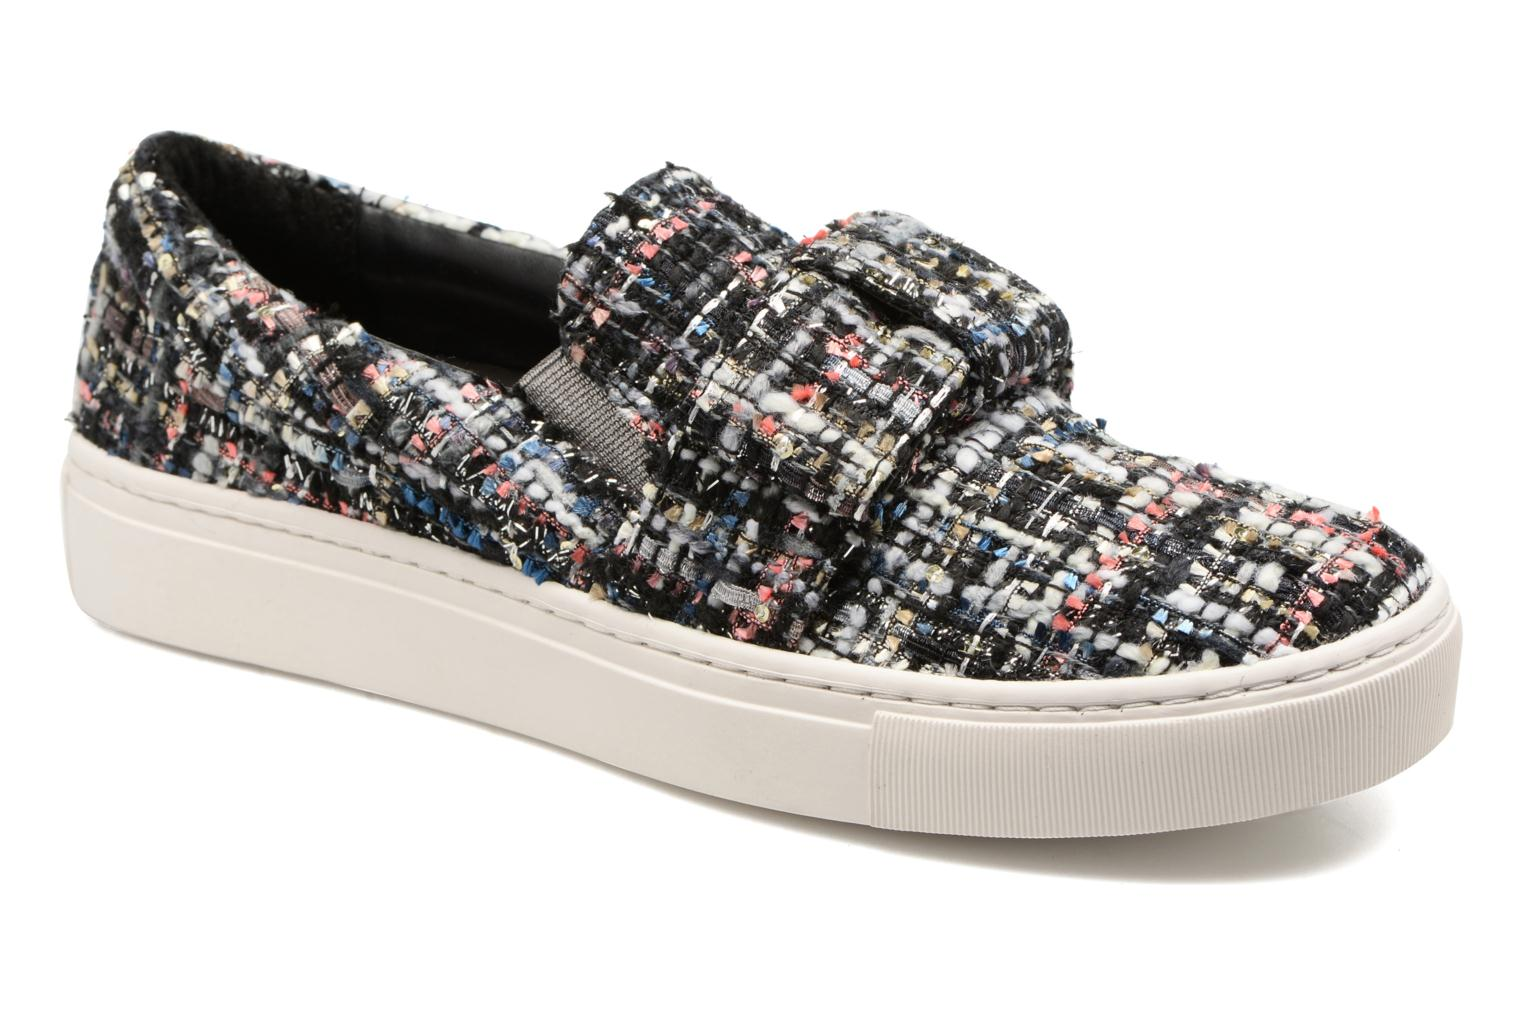 Marques Chaussure femme Karl Lagerfeld femme Kupsole Bow Slip On Lt Pink Boucle Tweed